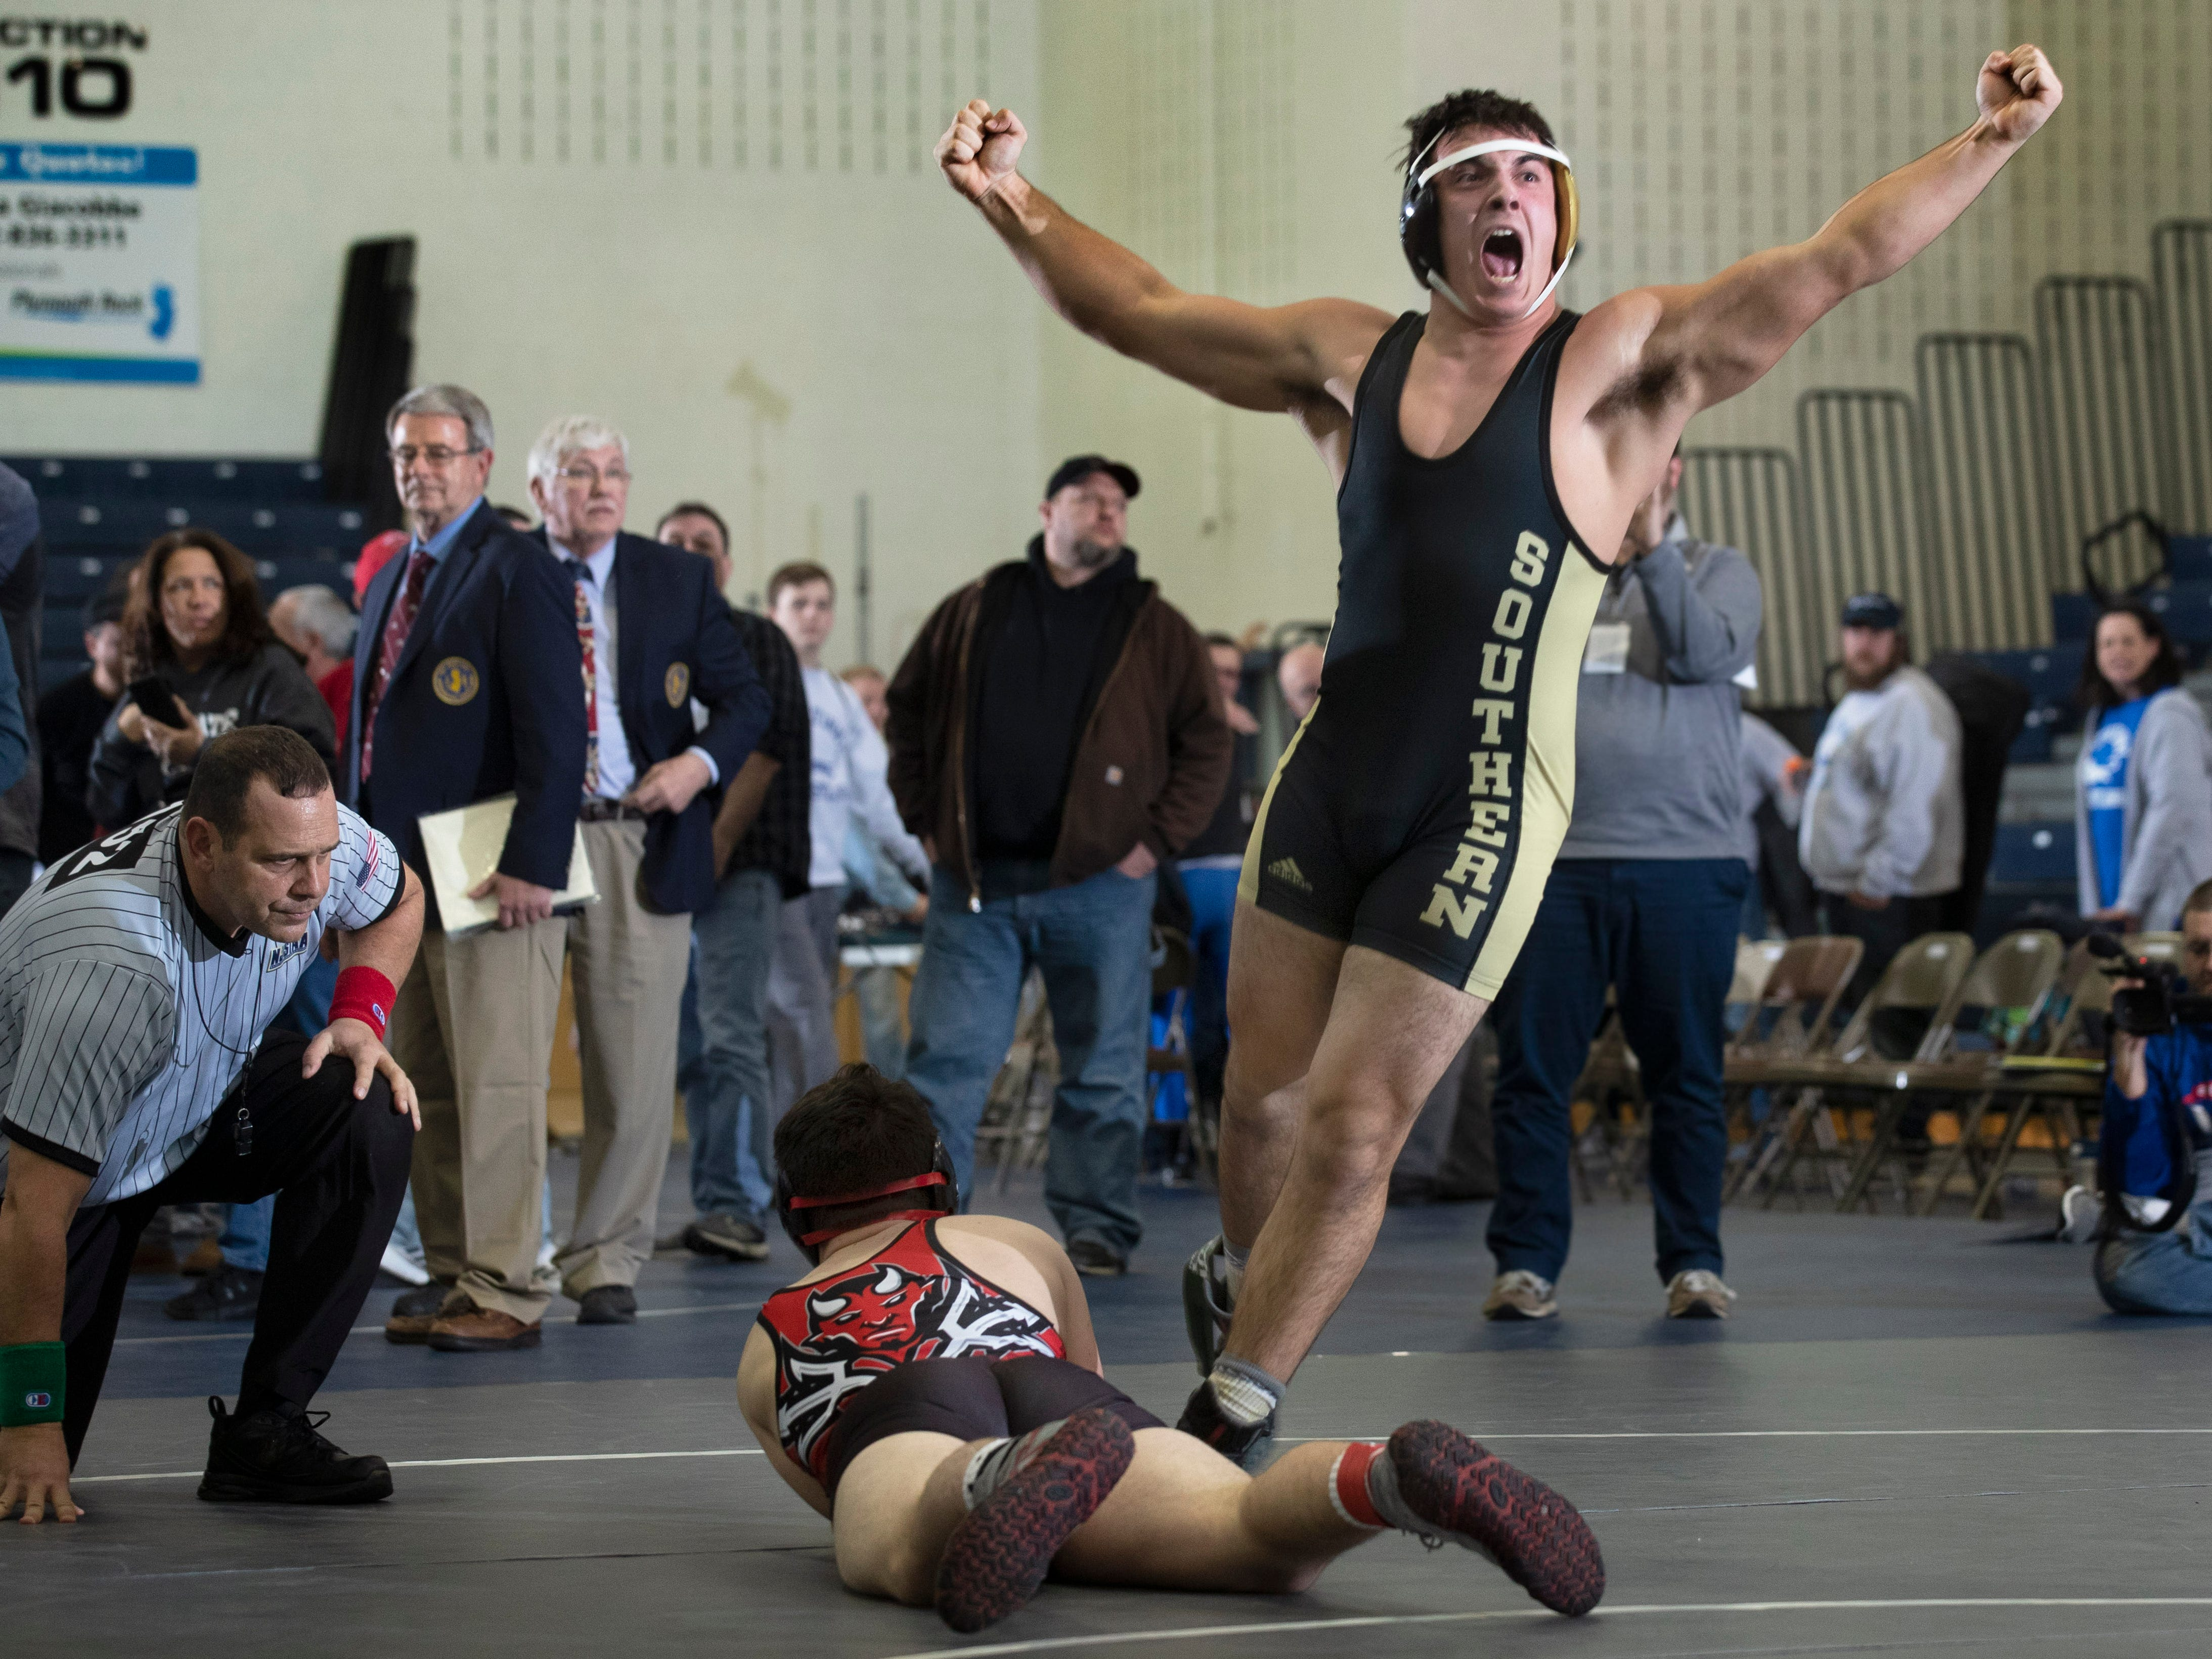 Southern's Ben zoParo celebrates after pinning his 195 lbs. oppenent. Southern Regional defeats  Hunterdon Central 34-27 in NJSIAA Team Wrestling Group V Final in Toms River NJ on February 10 , 2019.